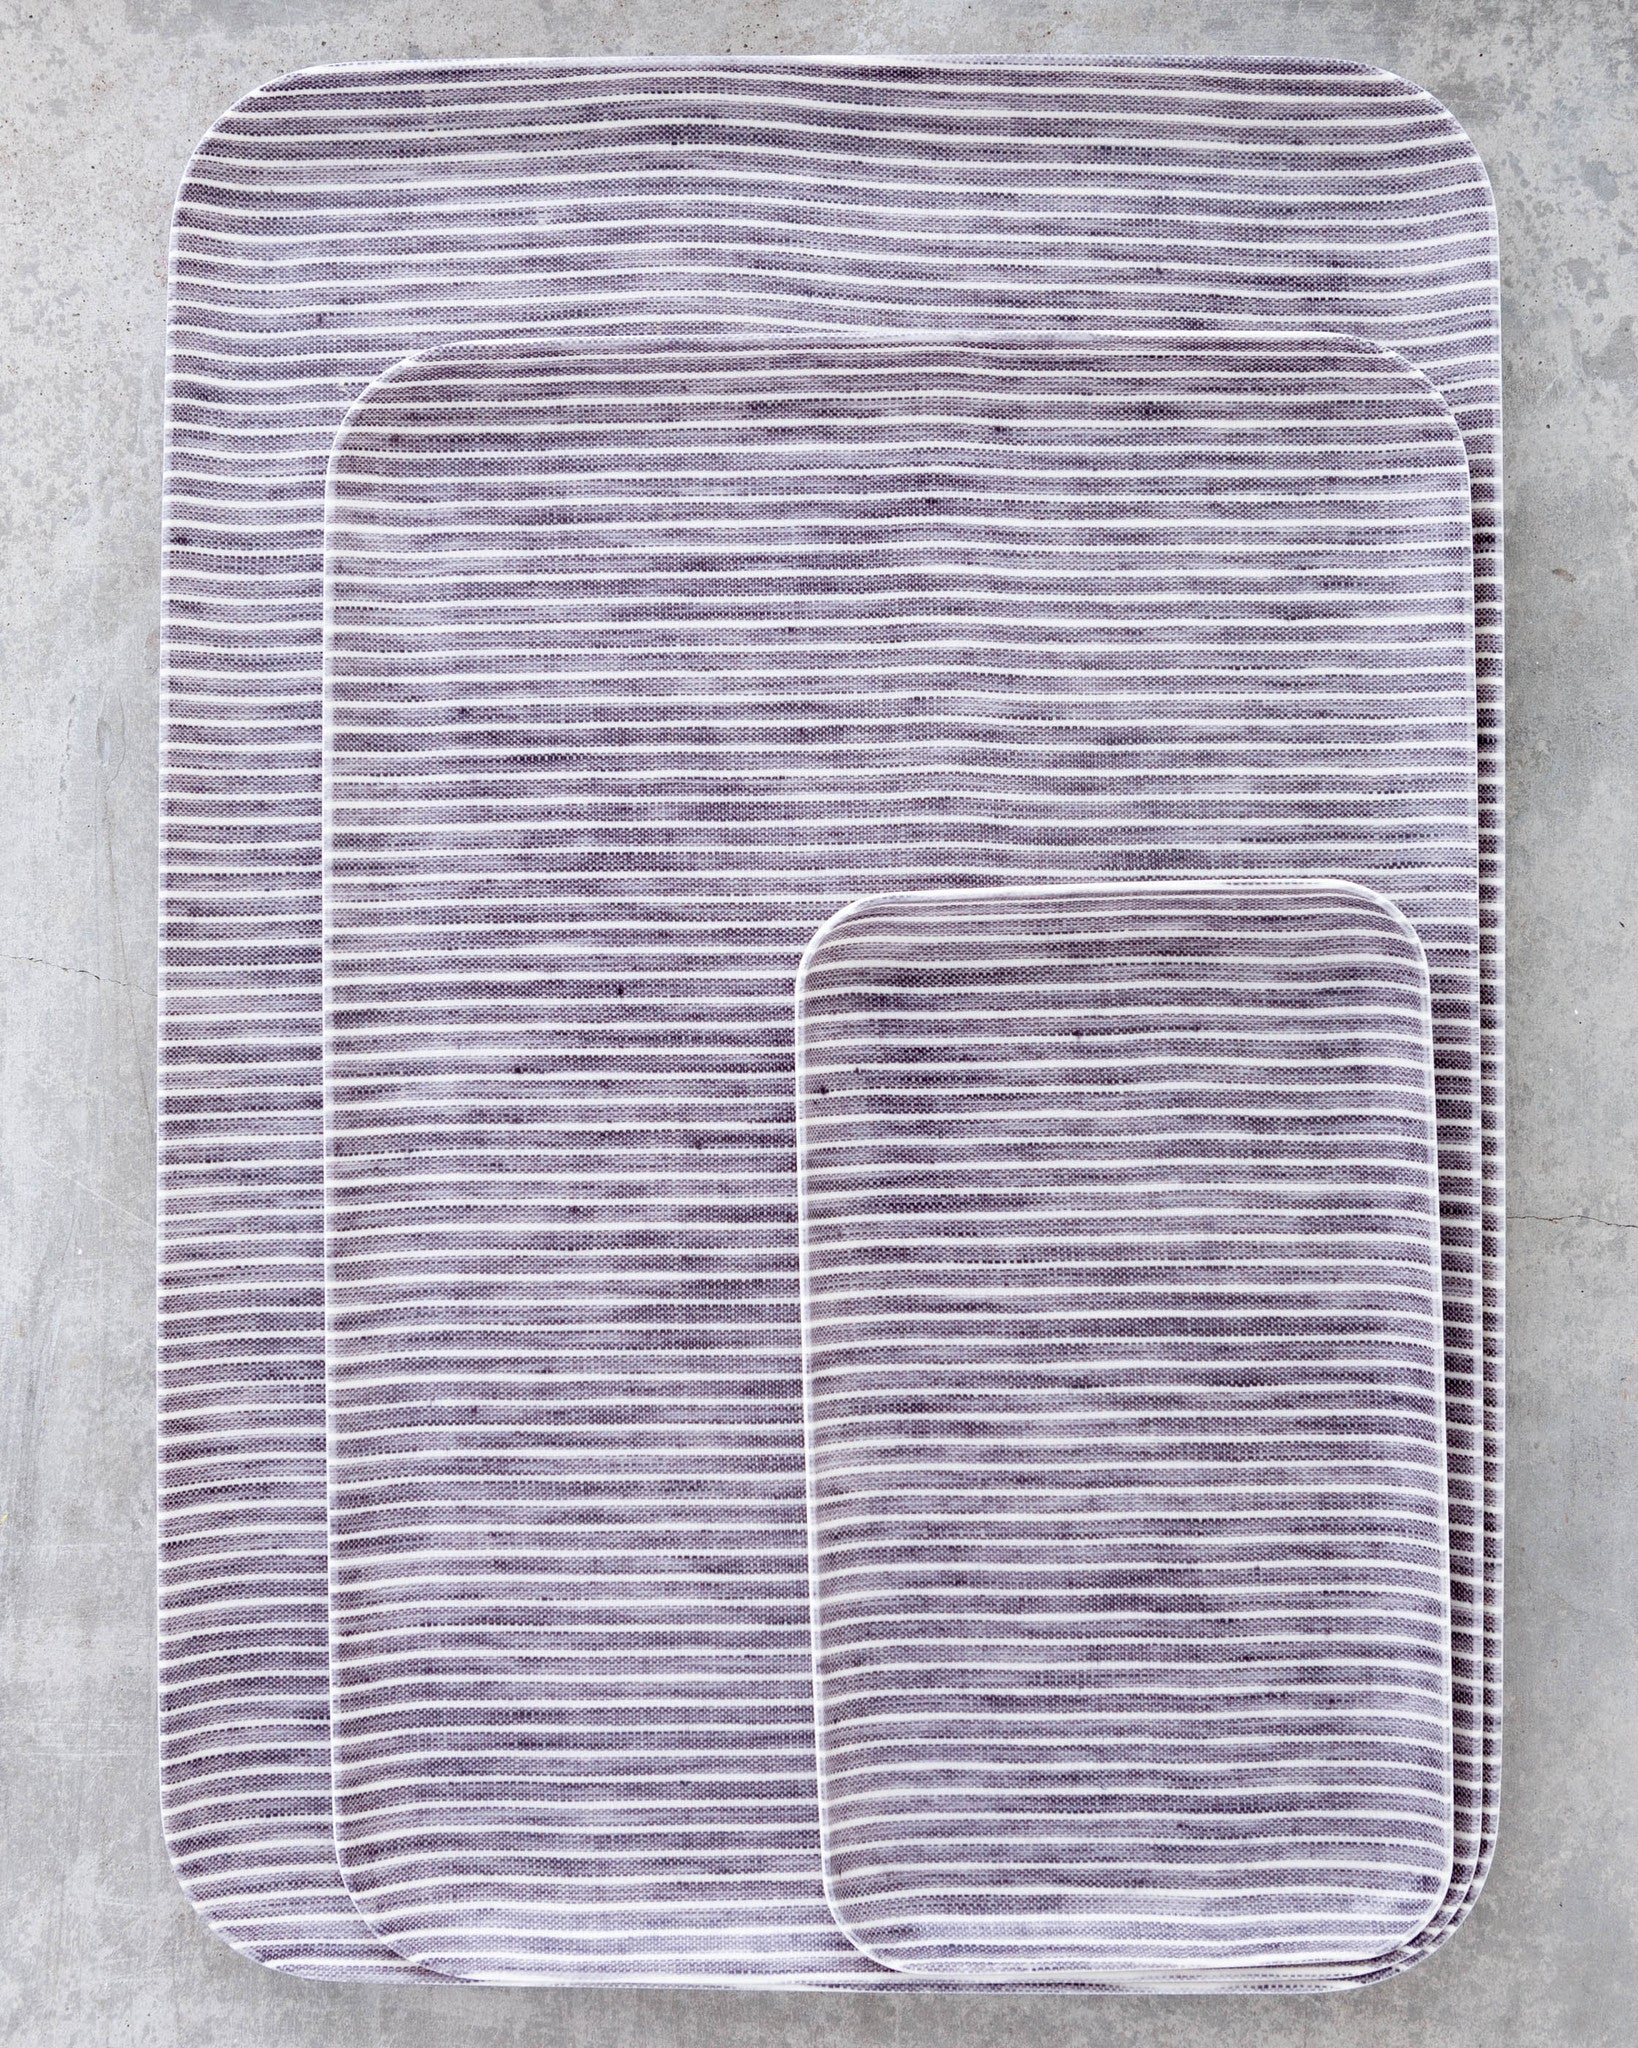 Fog Linen Medium Tray in Grey Stripe